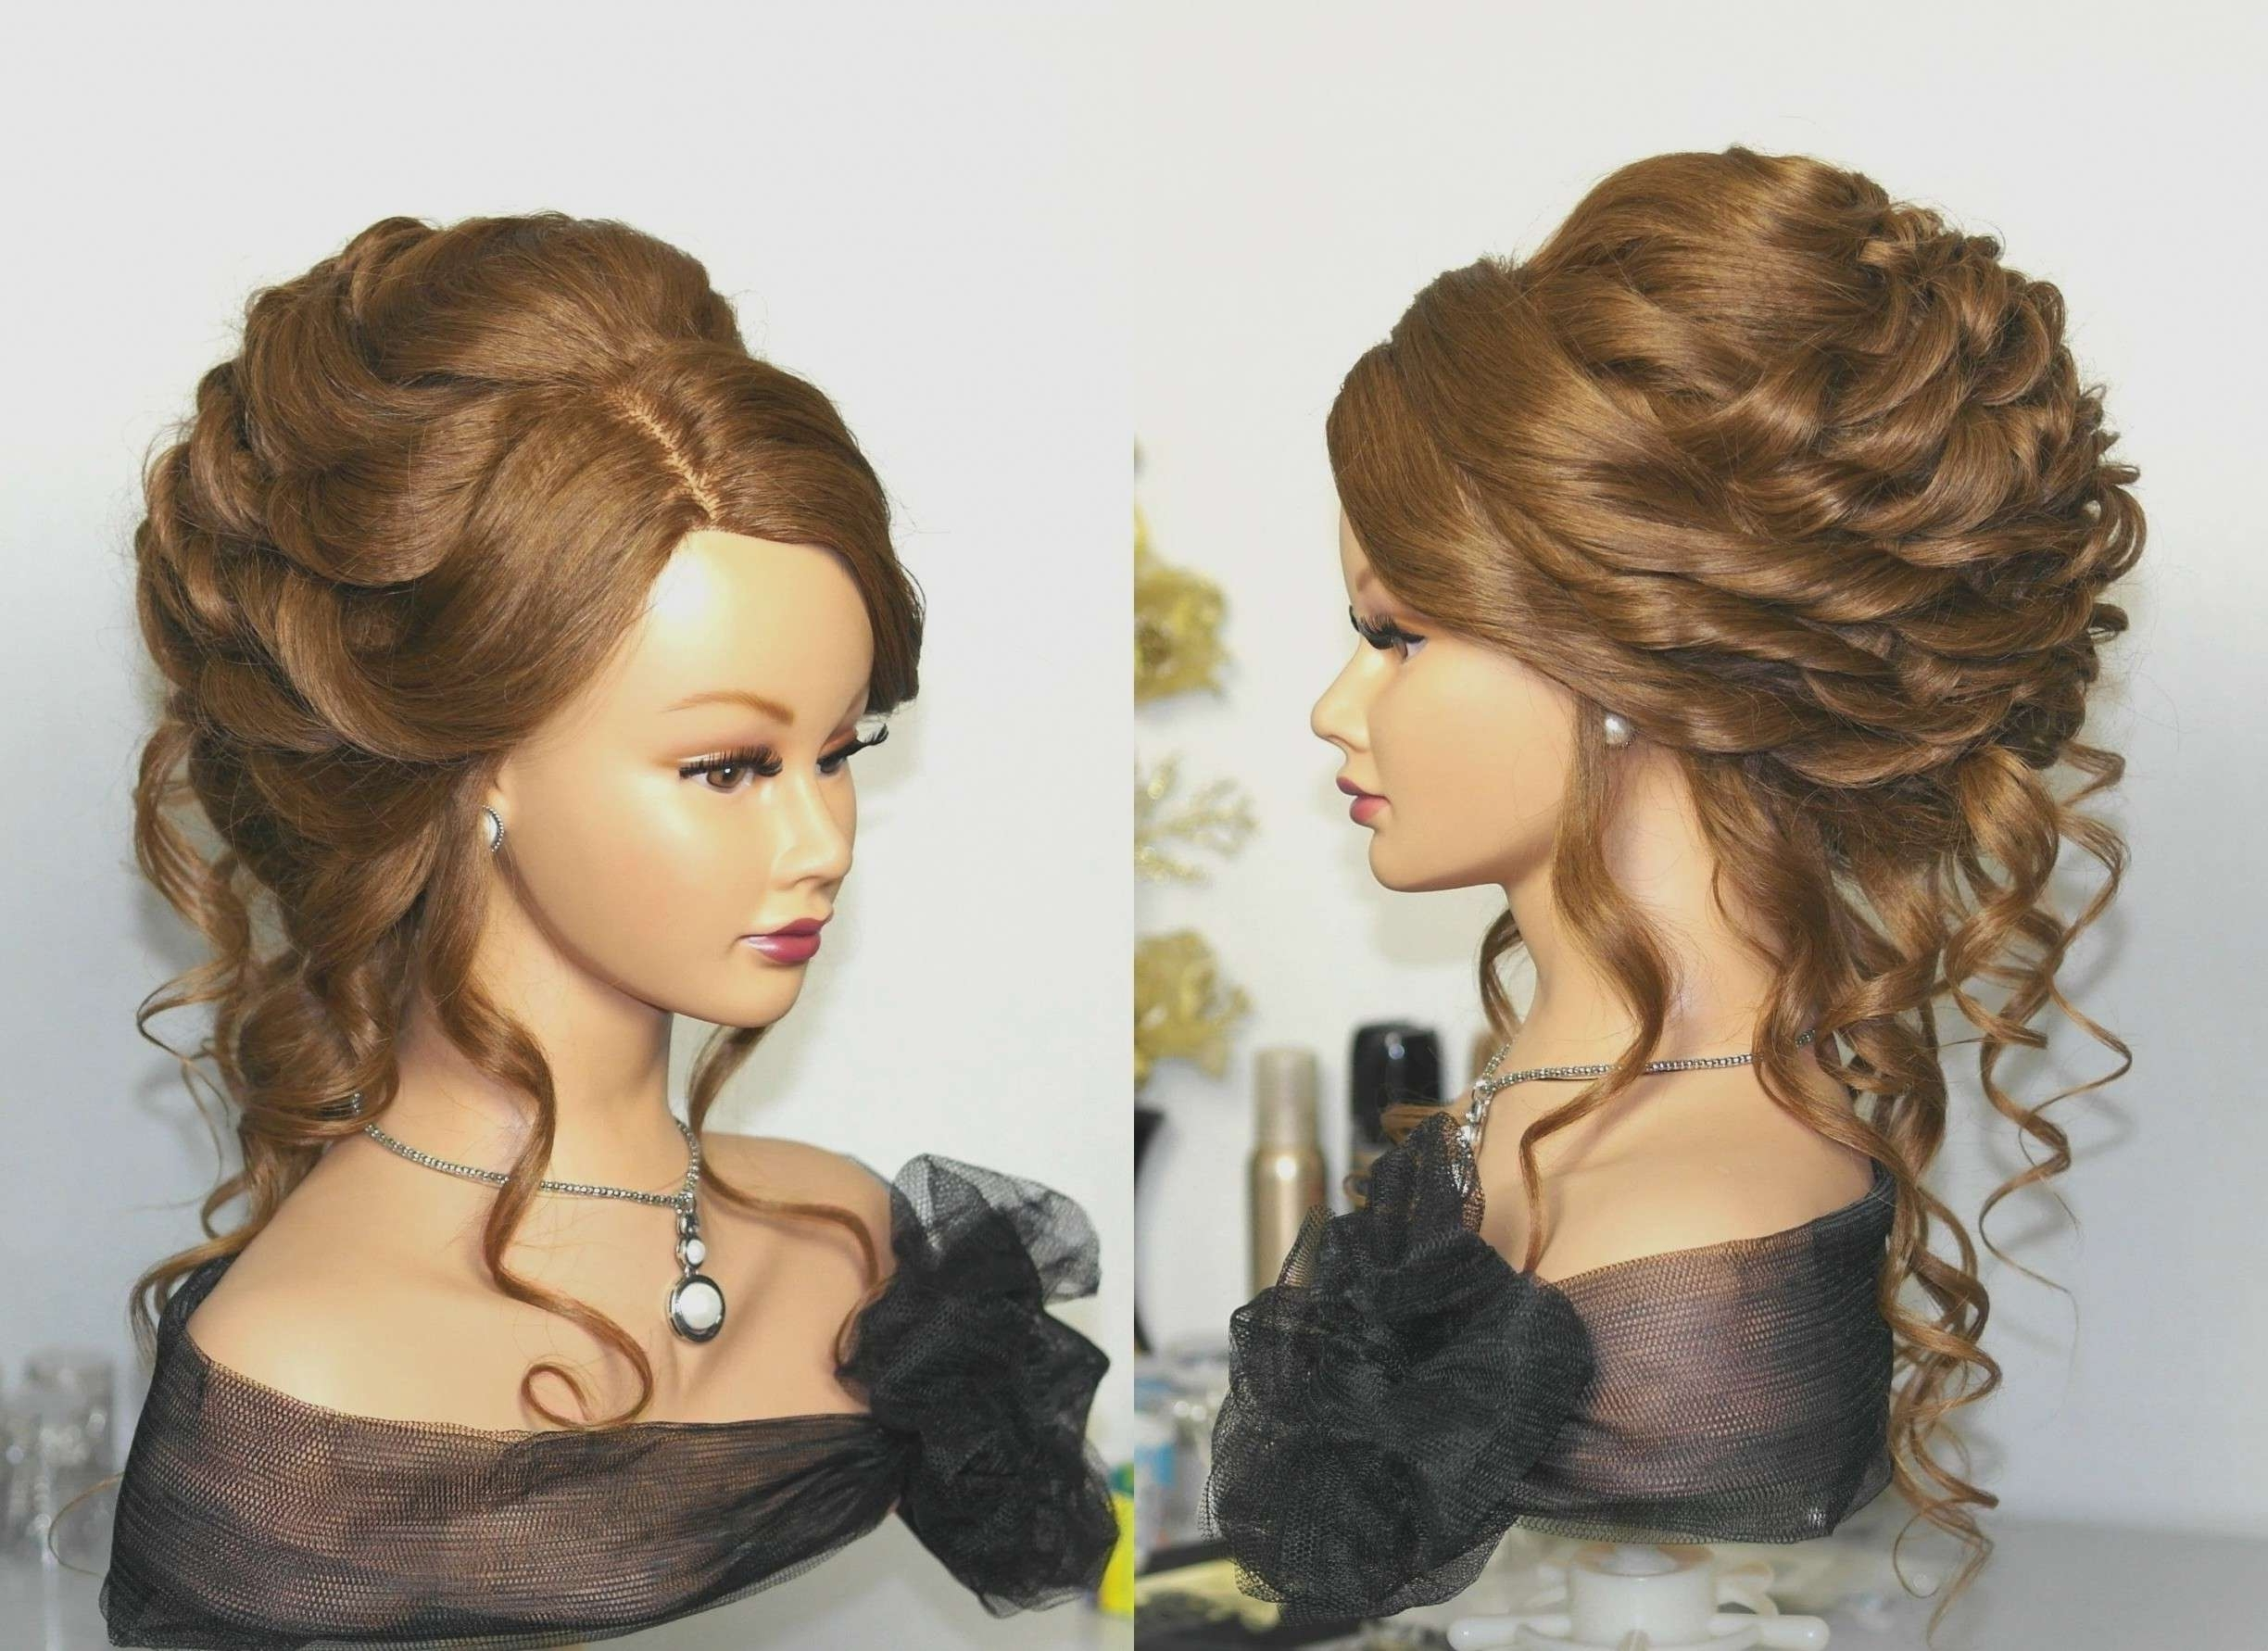 Popular Hairstyles For Long Hair For A Wedding Party Pertaining To Pictures: Hairstyles For Long Hair Wedding Party, – Homemade Party Decor (View 5 of 15)